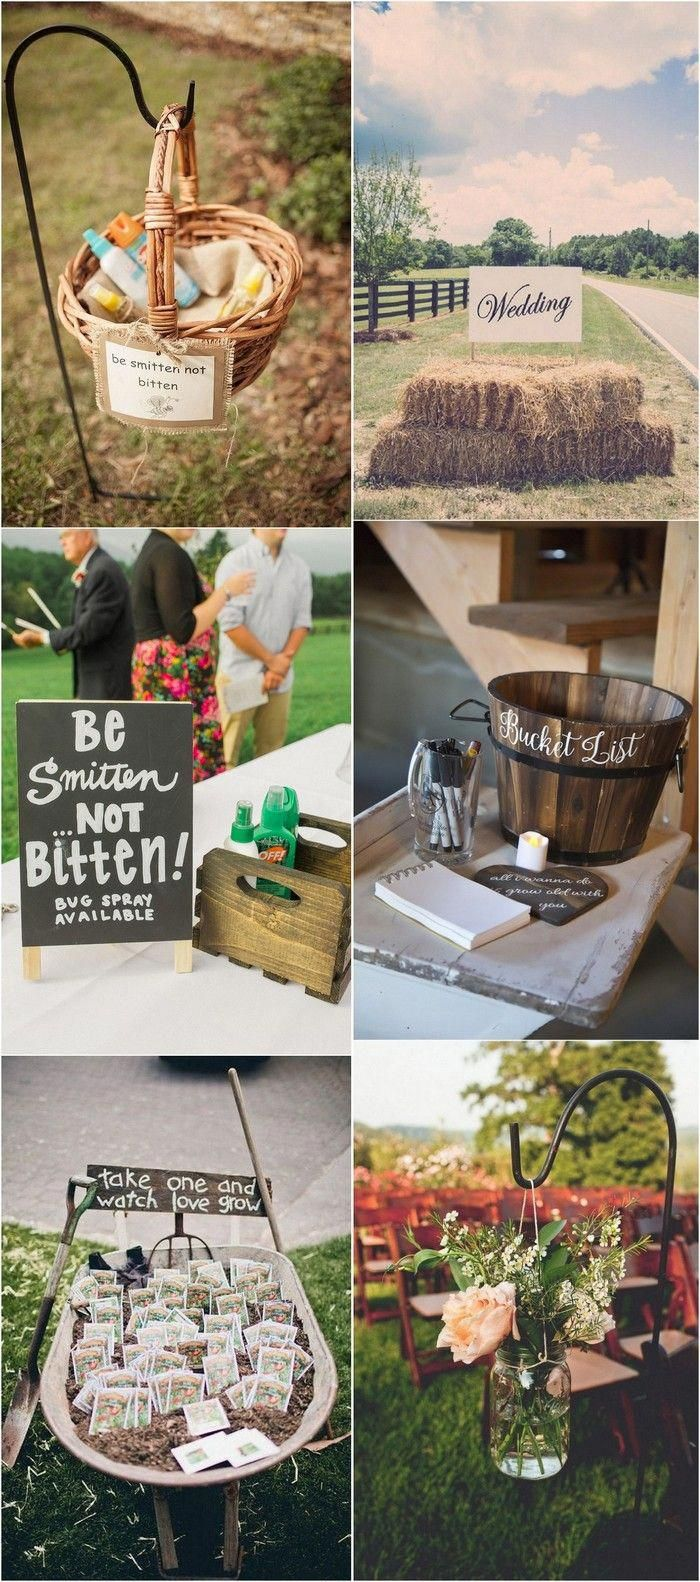 Rustic country wedding simply creative and vibrant decoration ideas. Tip number …